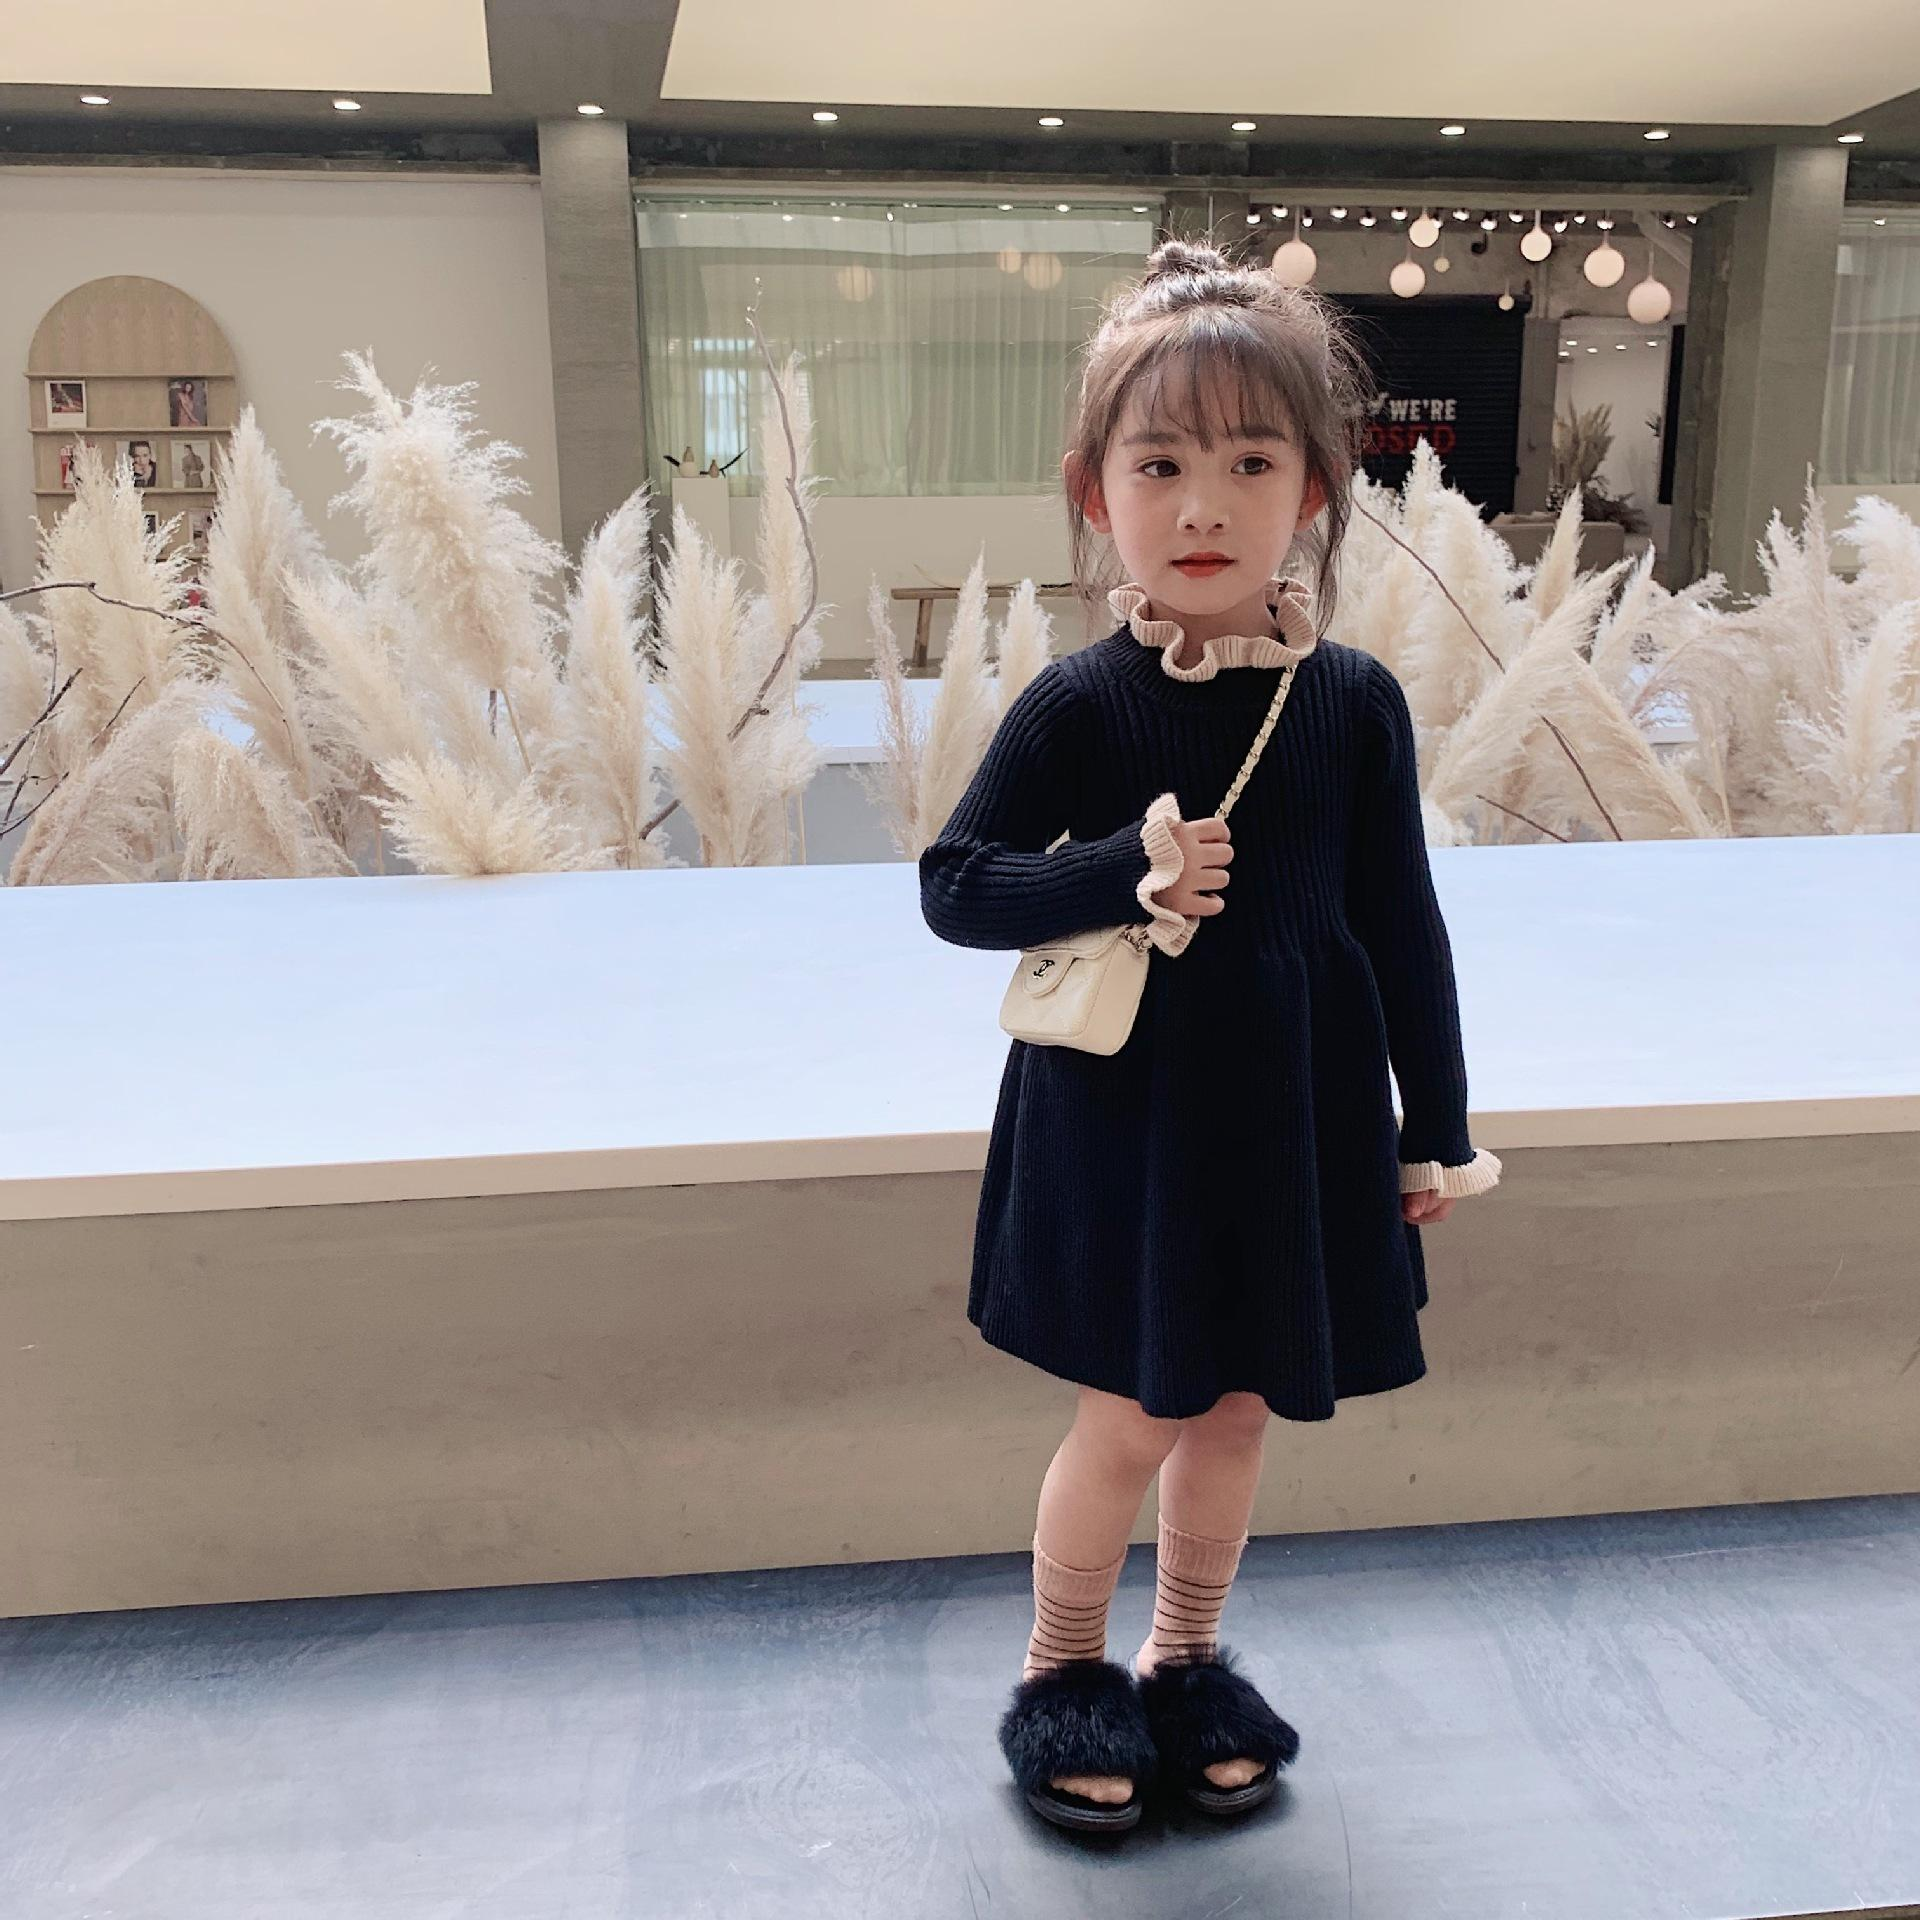 Winter New Arrival korean style cotton matching colors princess all-match knitted sweater dress for cute sweet baby girls